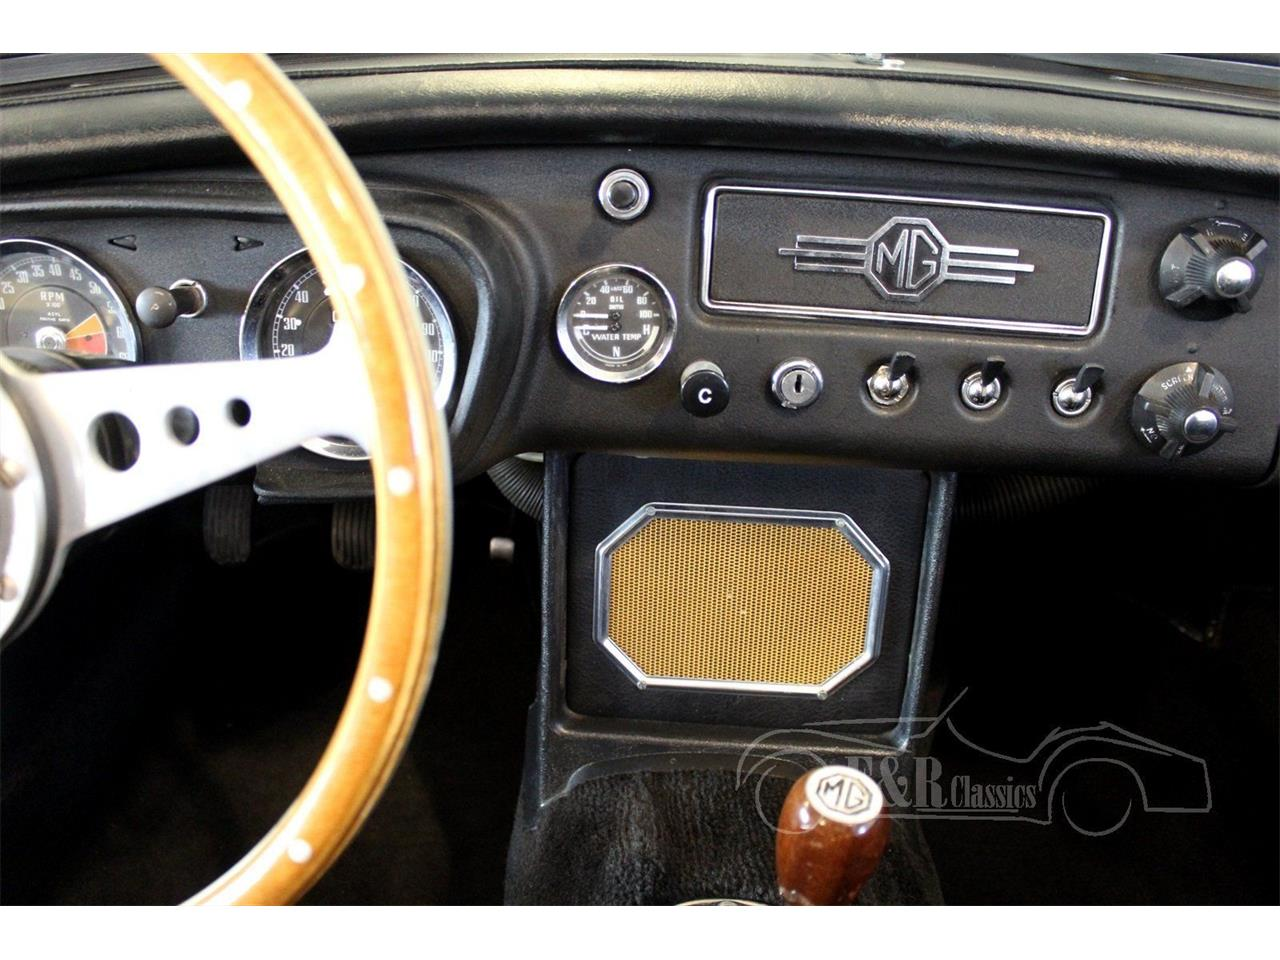 Large Picture of 1964 MG MGB located in Waalwijk noord brabant Offered by E & R Classics - Q178